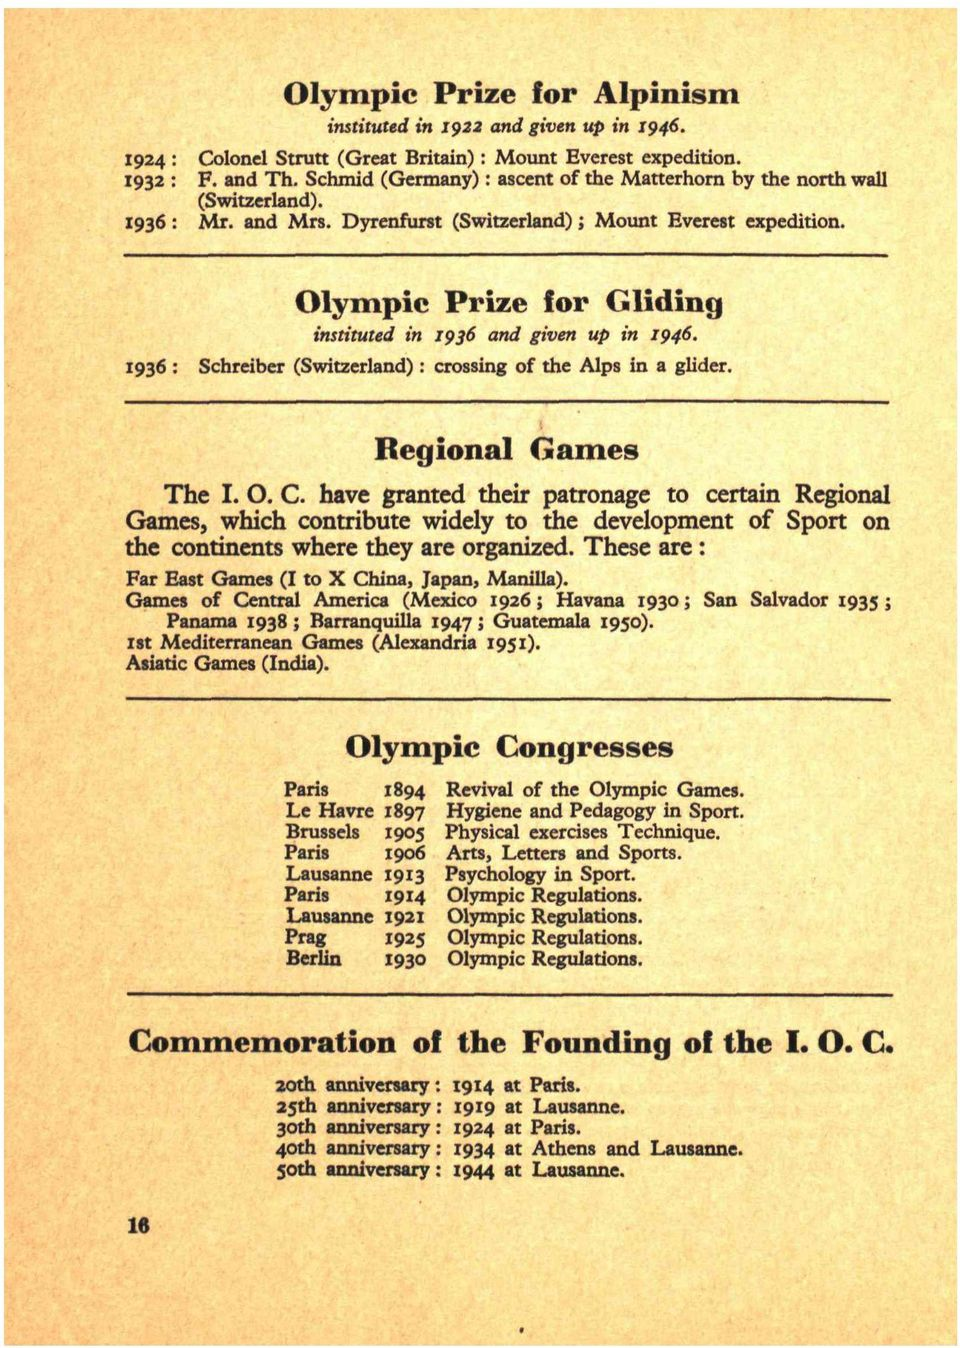 Olympic Prize for Gliding instituted in 1936 and given up in 1946. 1936 : Schreiber (Switzerland) : crossing of the Alps in a glider. Regional Games The I. O. C.